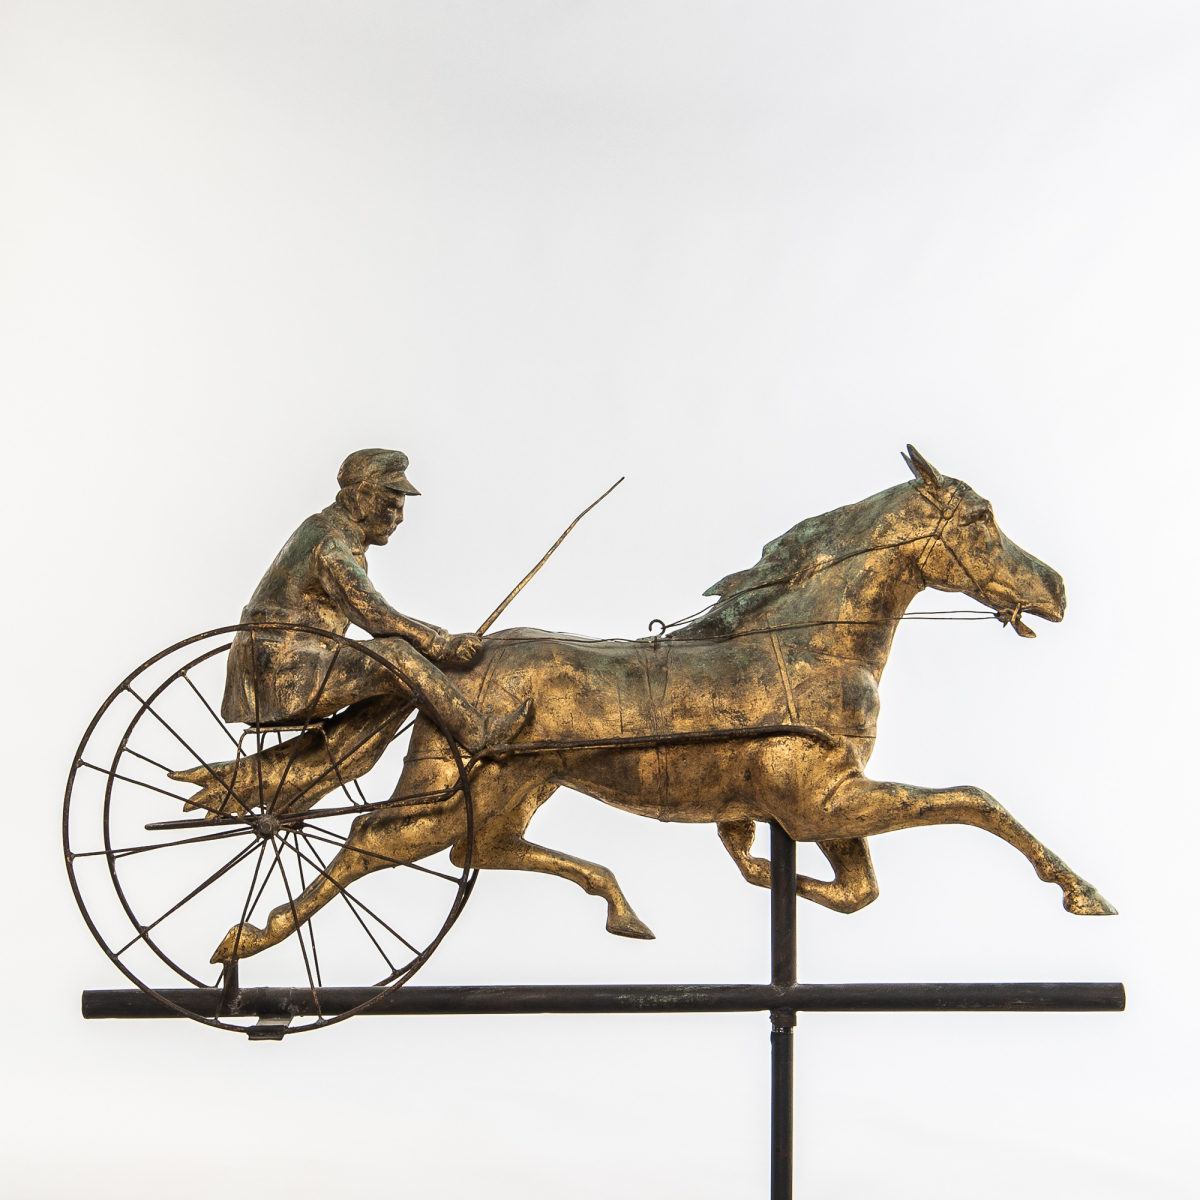 Molded and Gilded Sheet Copper Horse and Sulky Weathervane, J.L. Mott Iron Works, New York, c. 1890